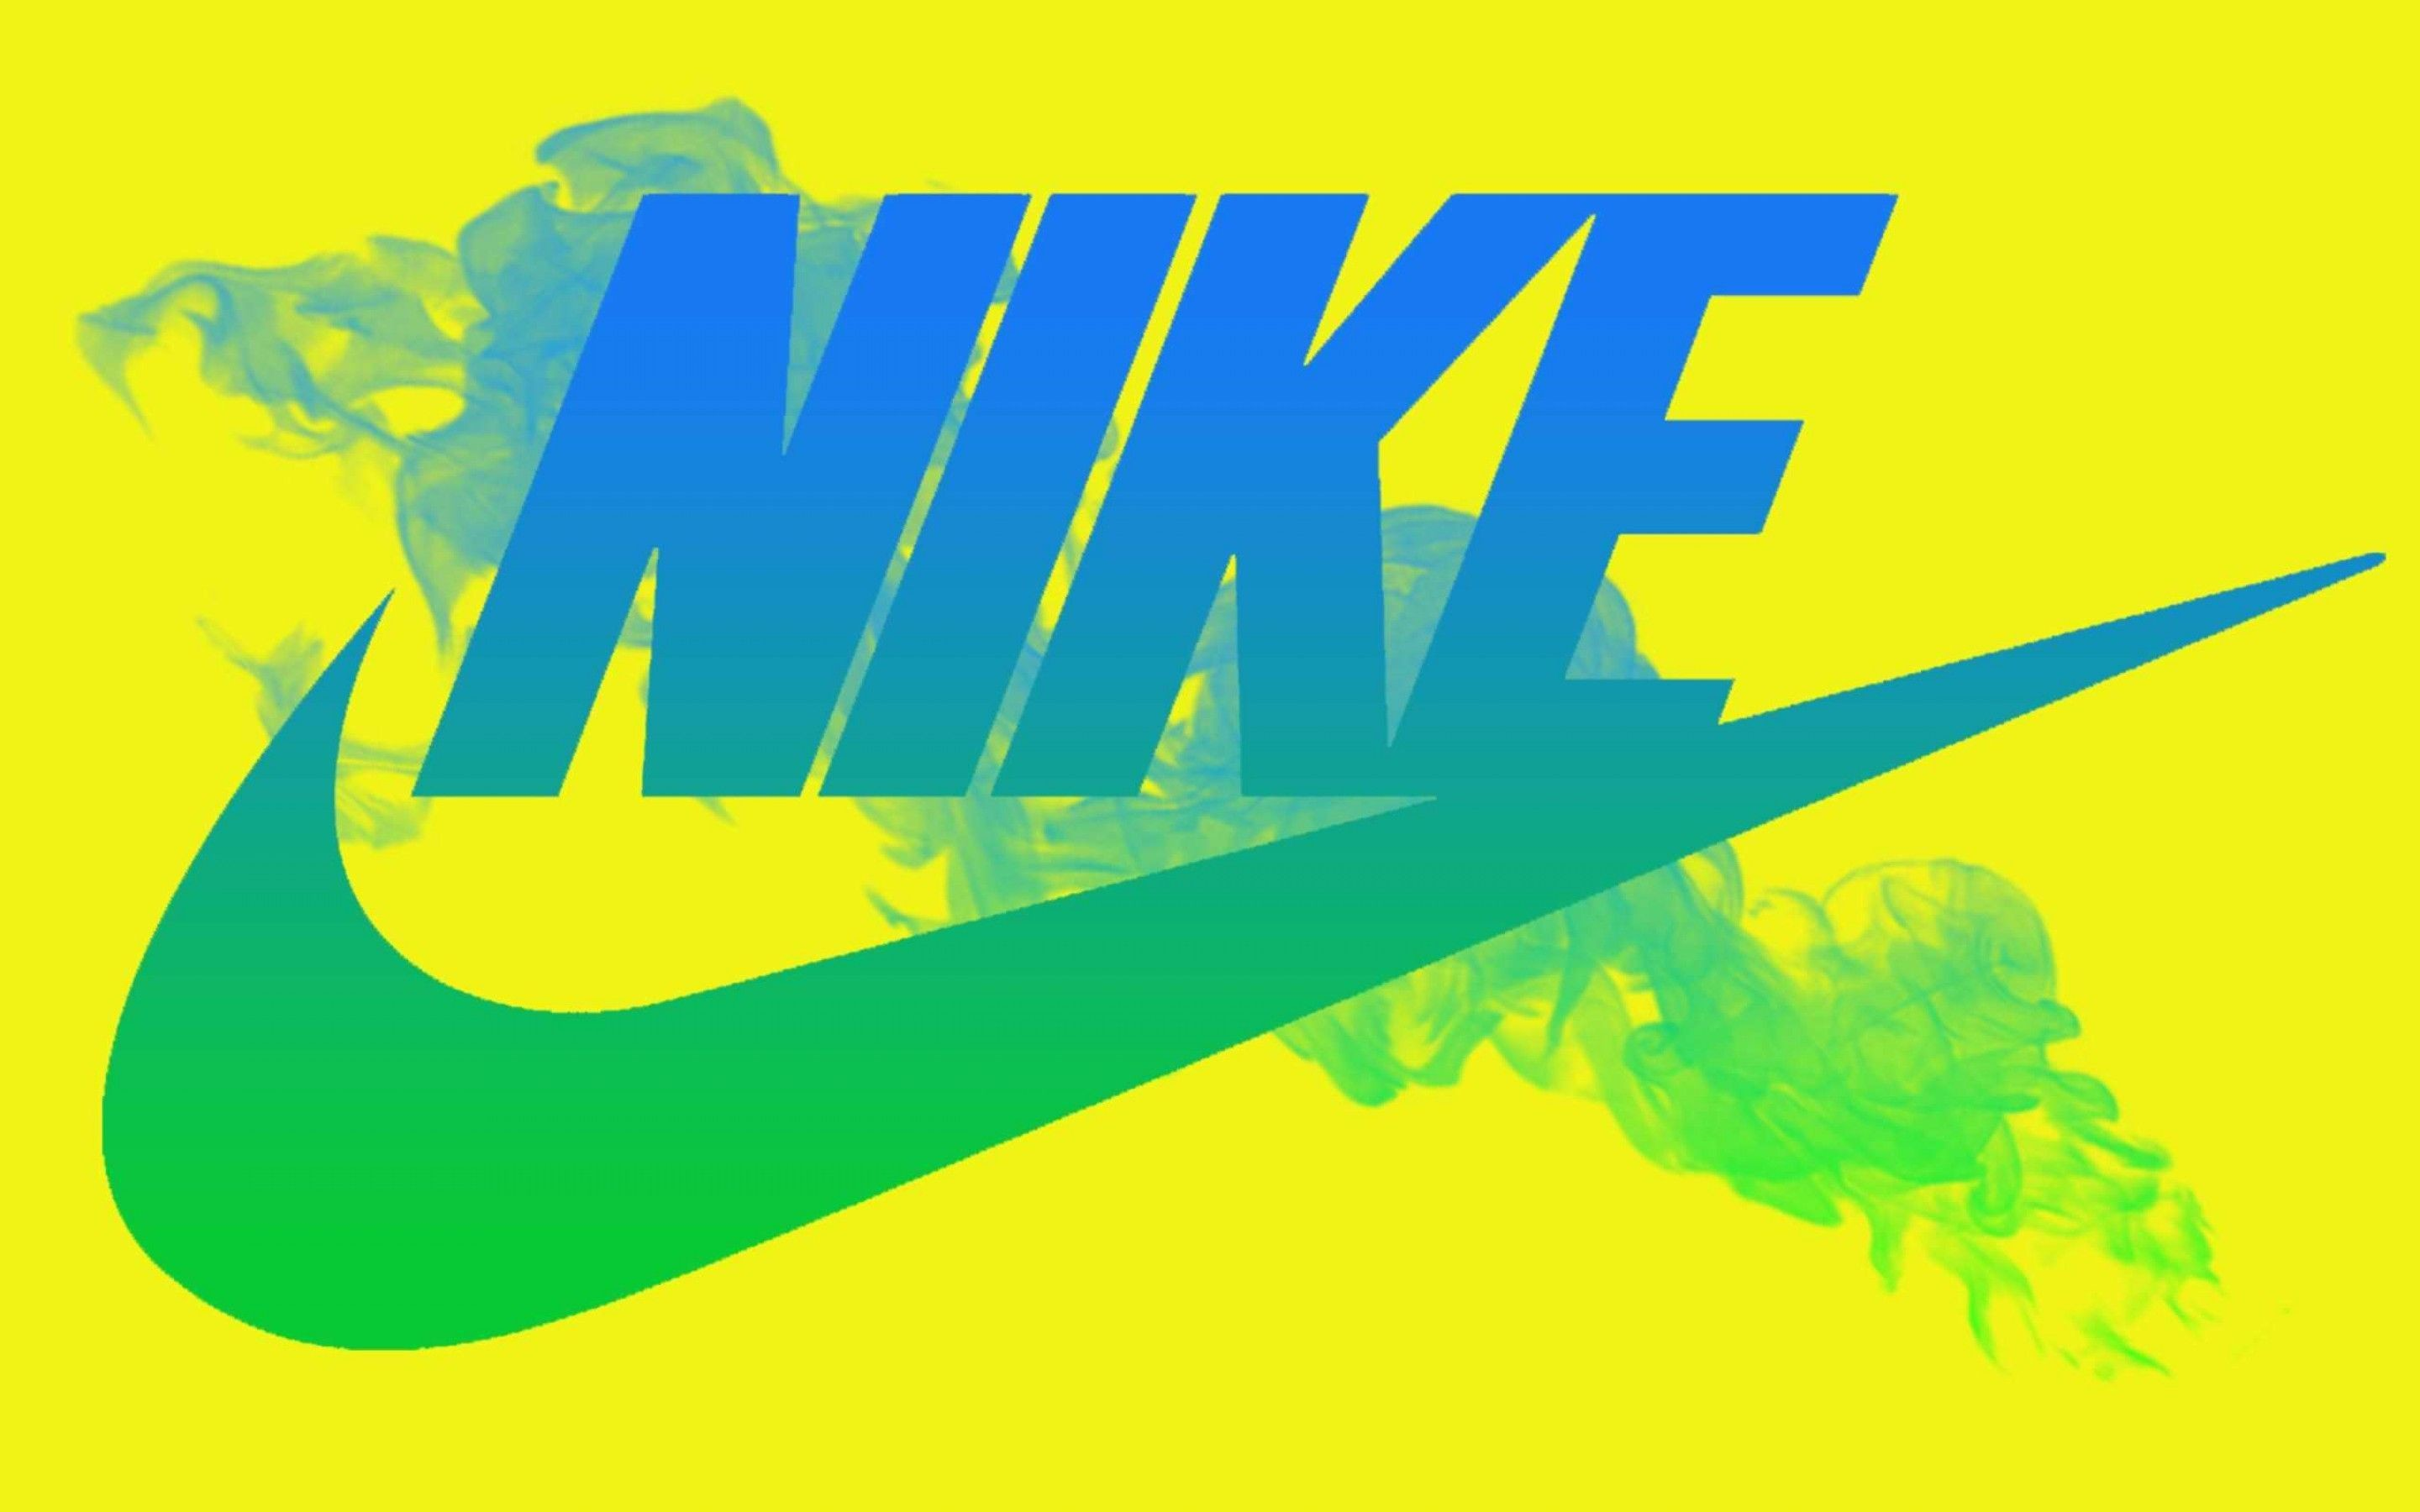 Res: 2880x1800, Cool Nike Wallpapers: Find best latest Cool Nike Wallpapers in HD for your PC desktop background & mobile phones.